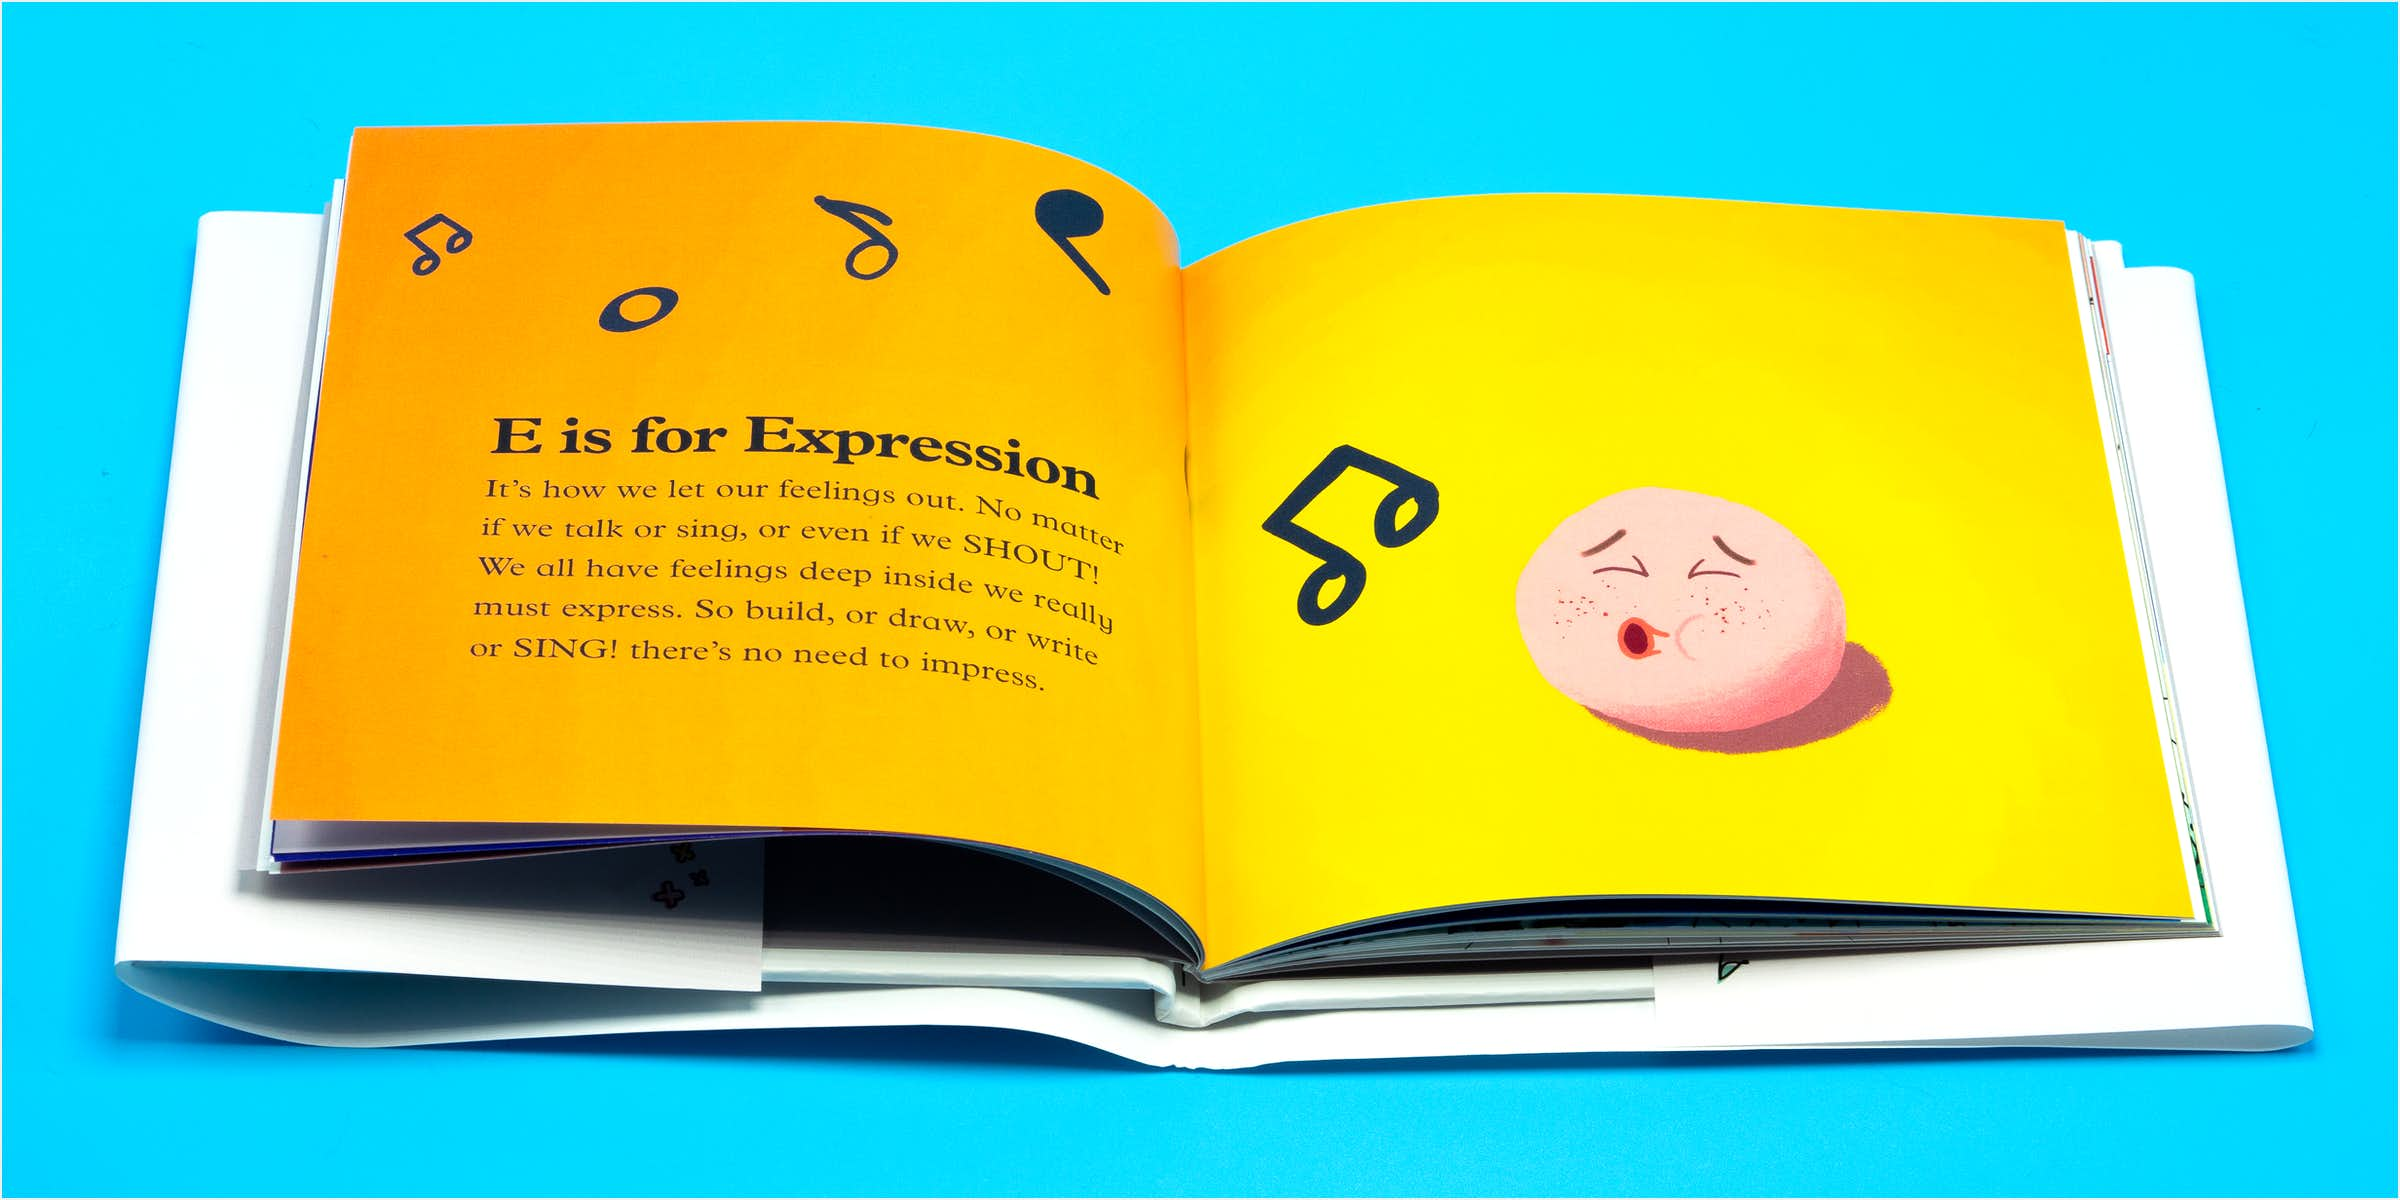 E is for Expression